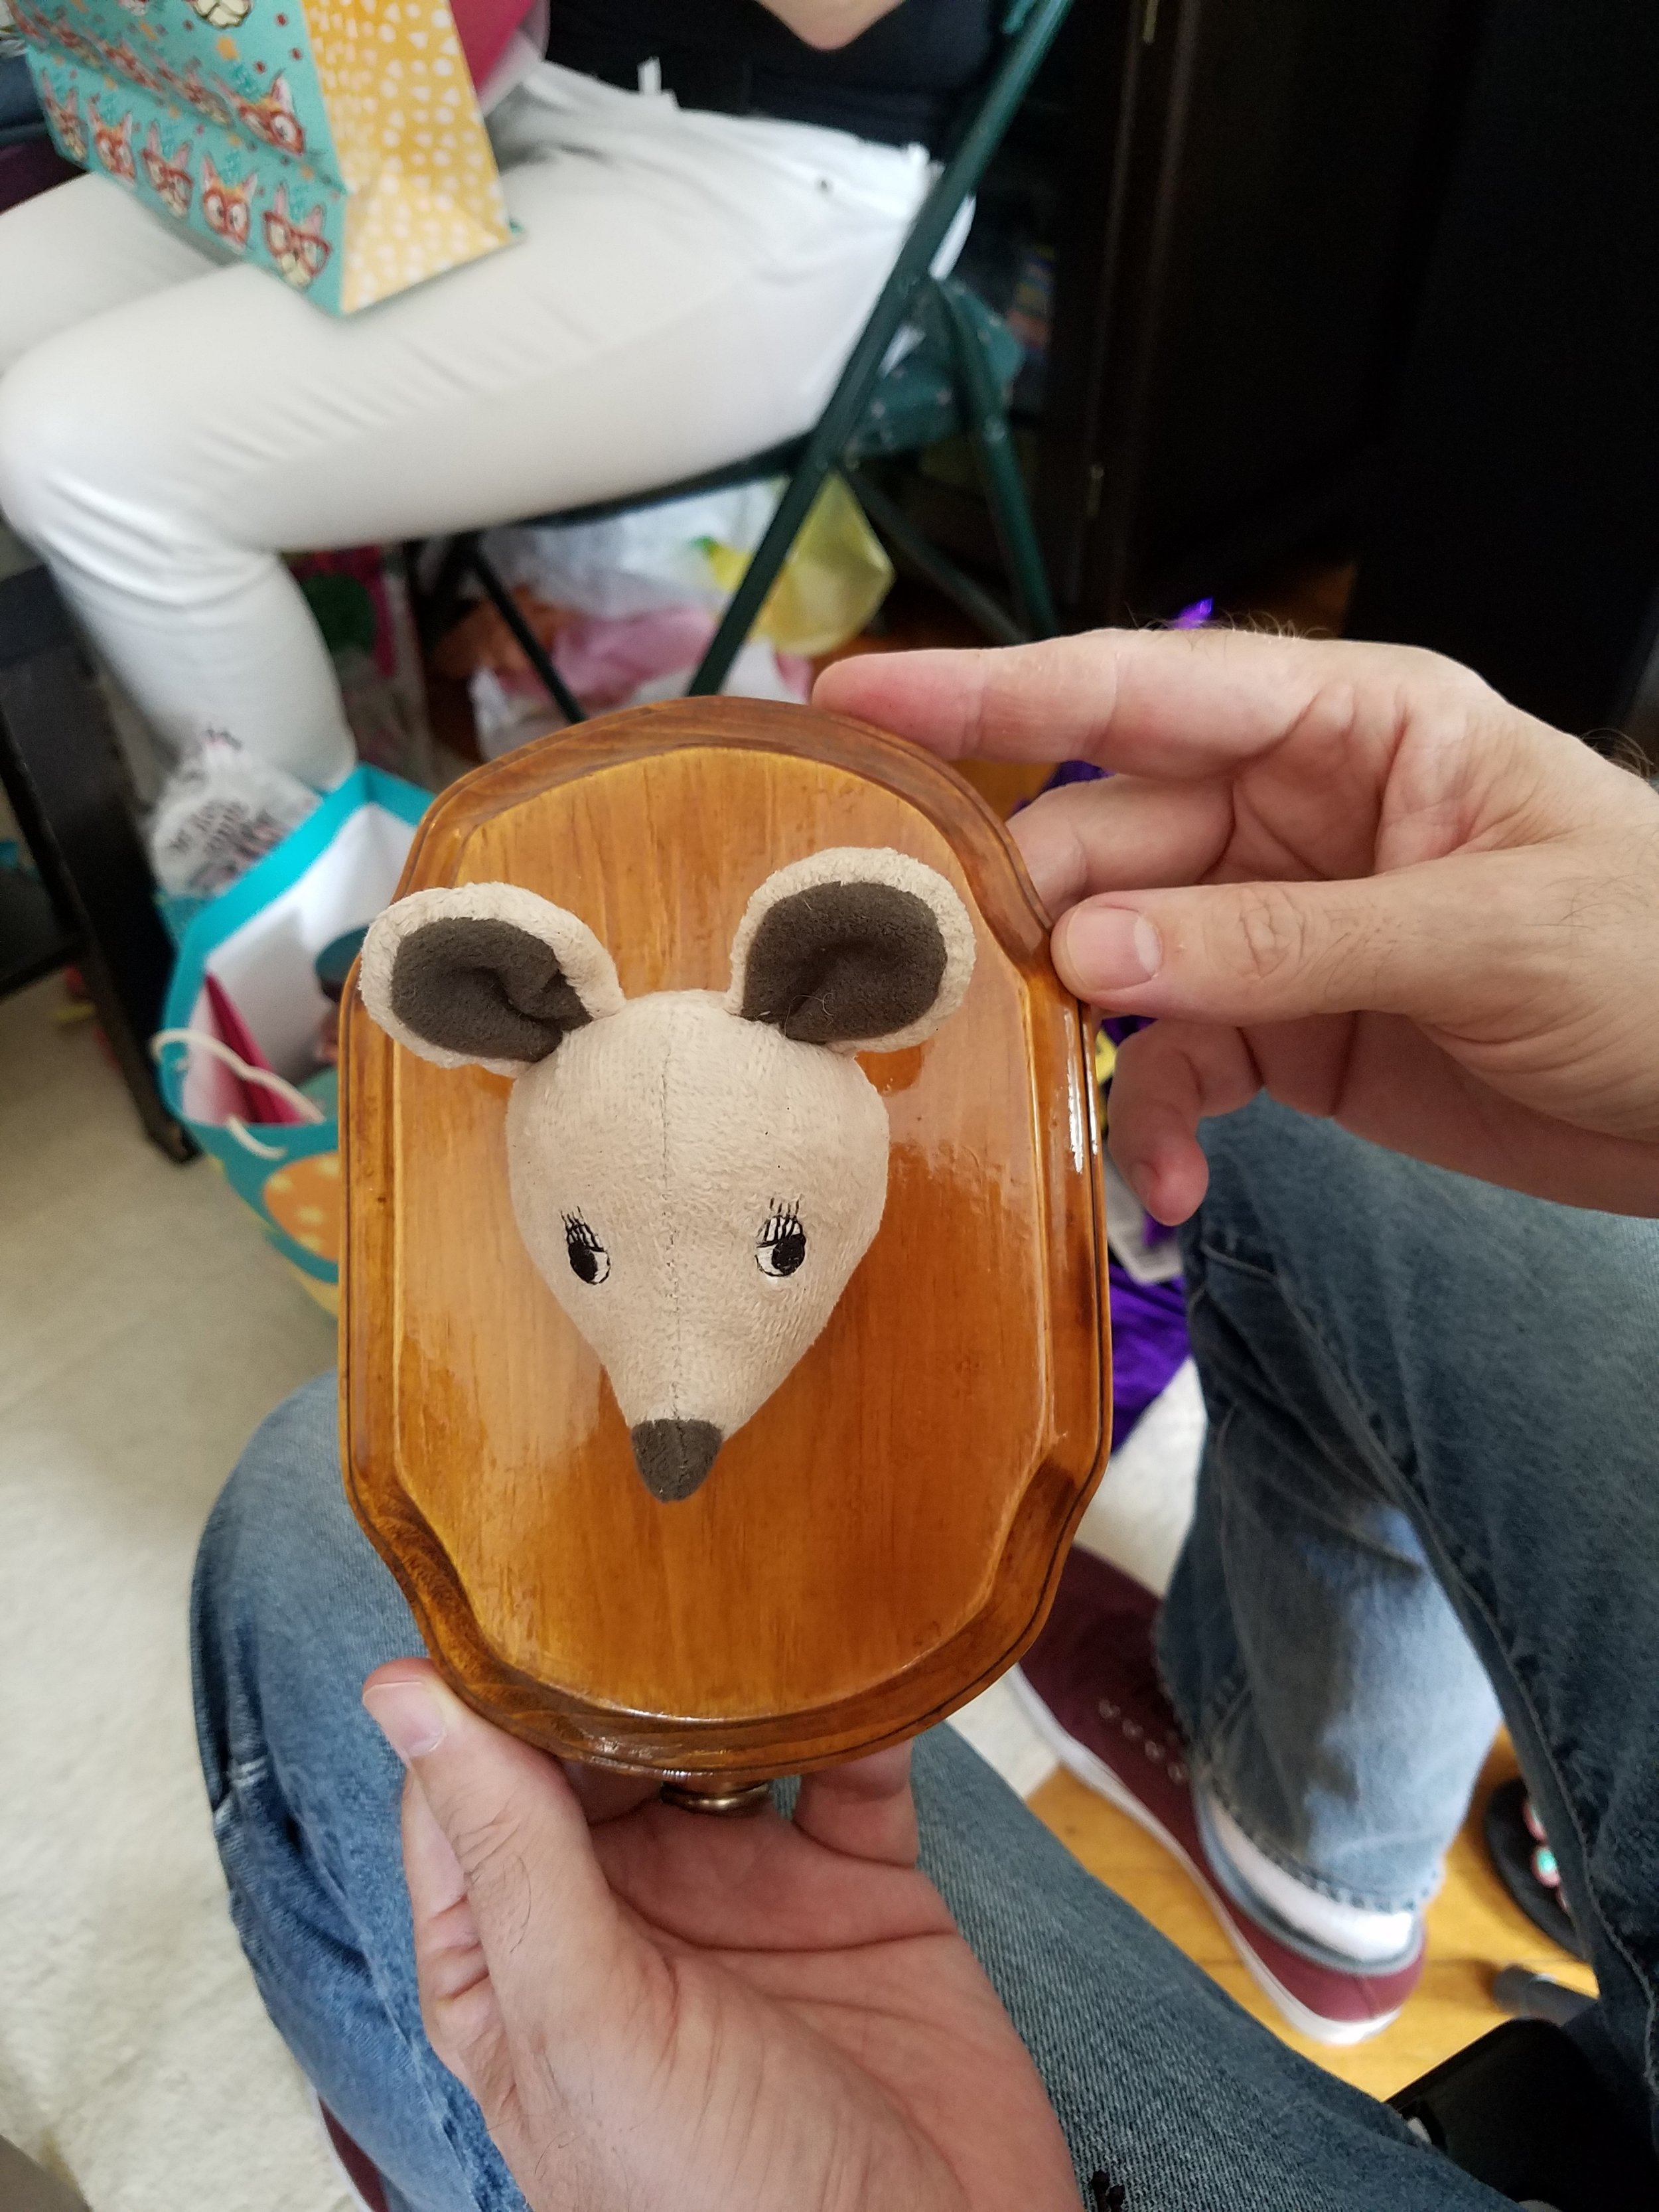 This mouse head trophy was the most adorable thing I've ever seen. Turns out, it was HAND MADE by one of the guests and I firmly believe she needs to quit her job and just make these for a living.